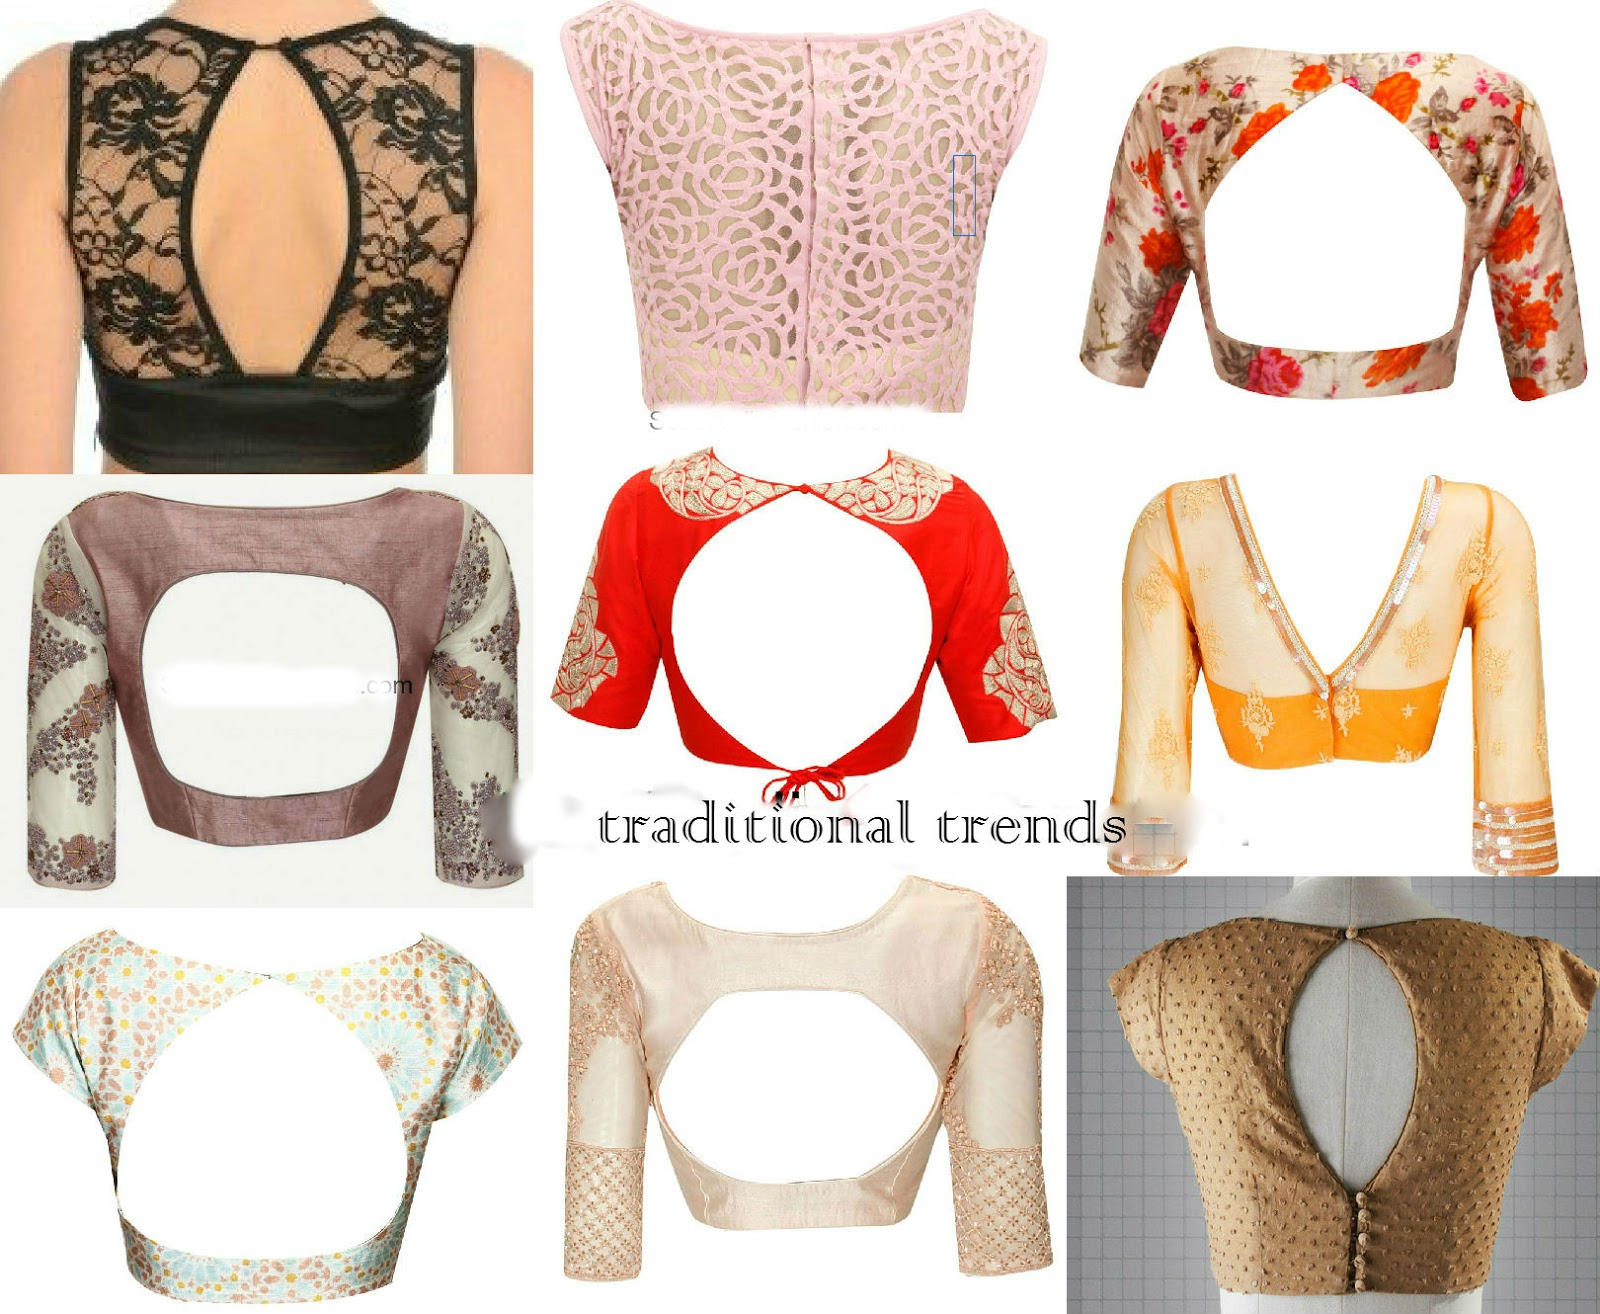 traditional trends back designs